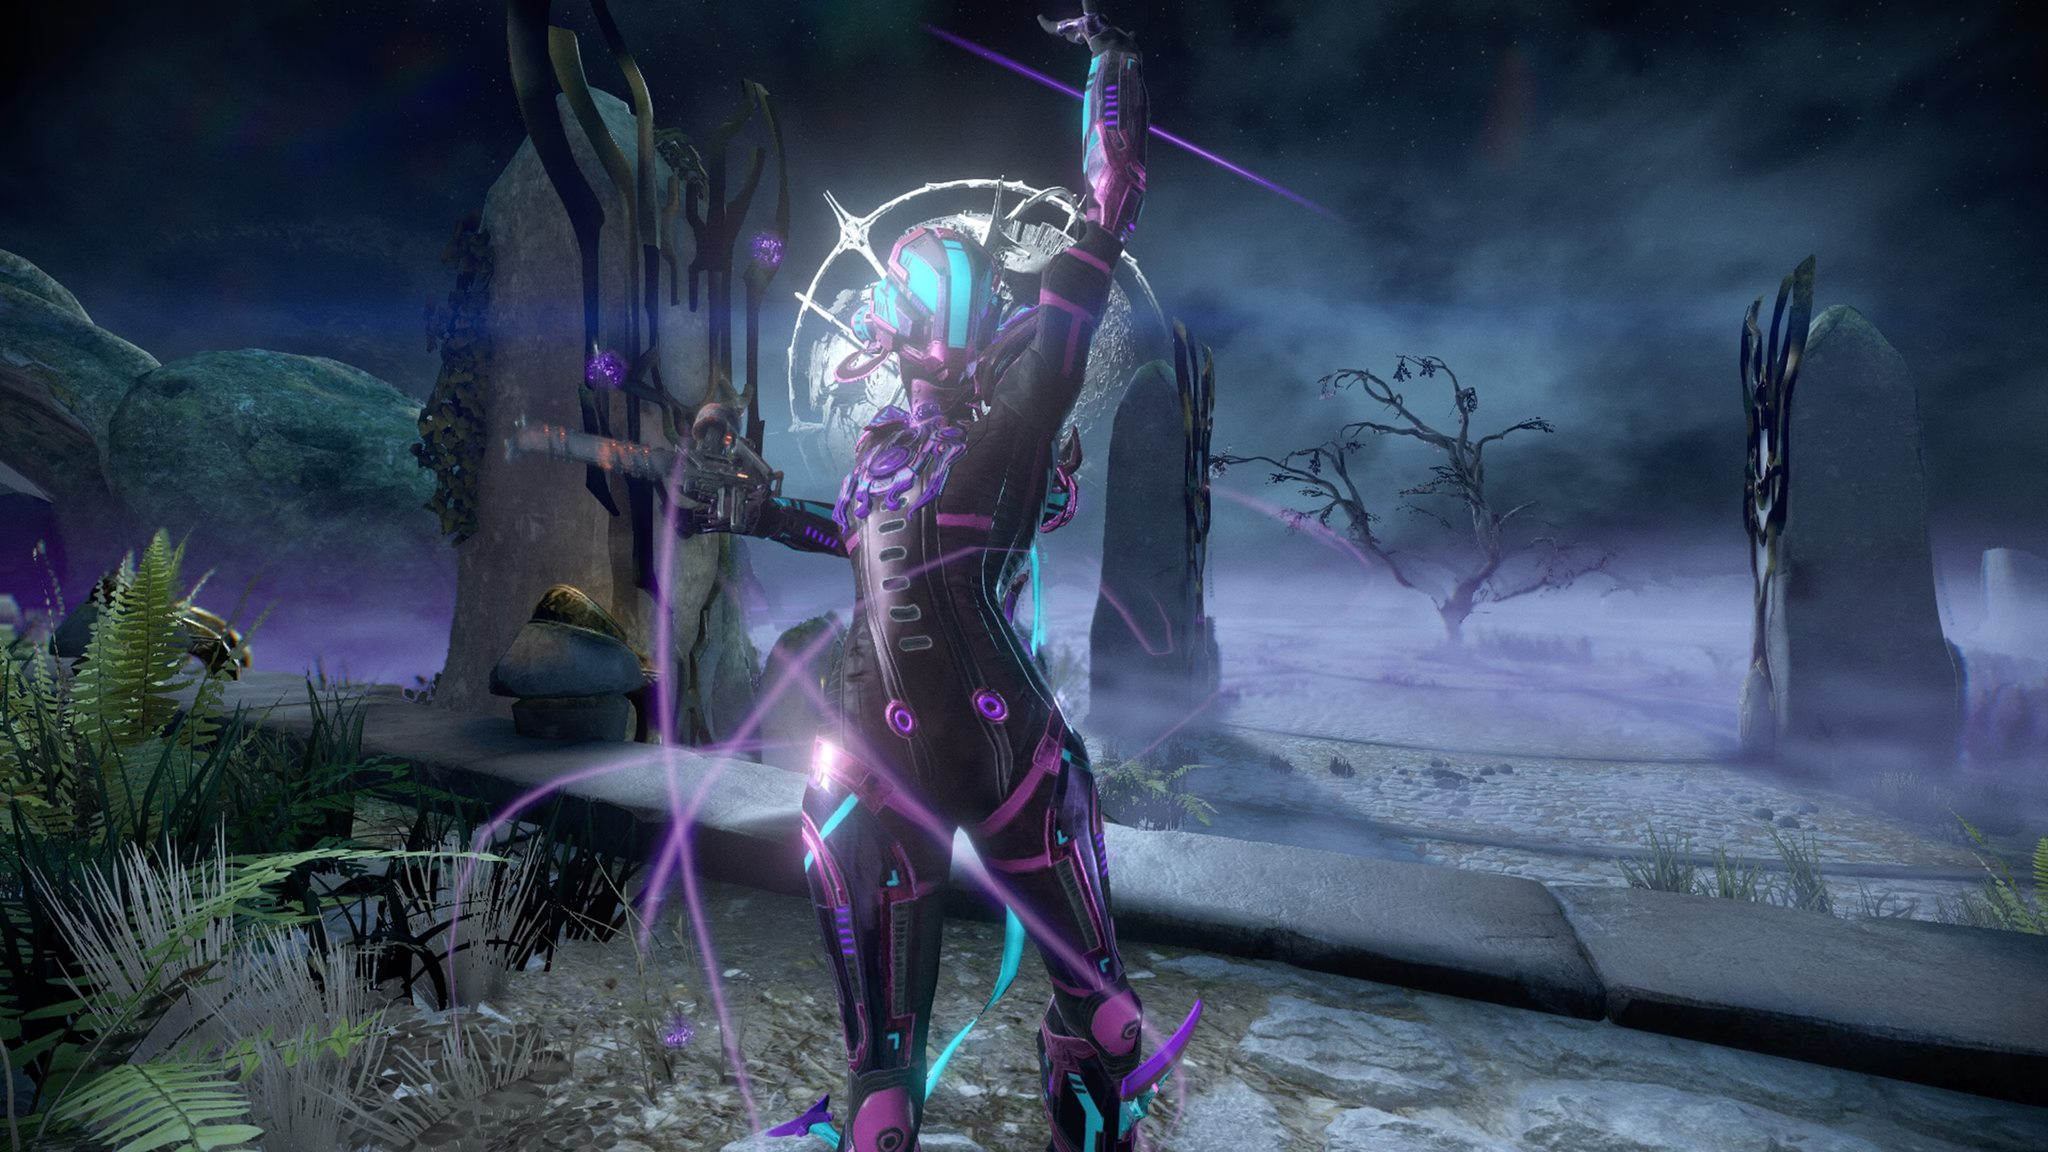 Warframe 101 Nova Cephalon Squared Nova uses electromagnetic energy to contain and control highly volatile antimatter that fuels her abilities. warframe 101 nova cephalon squared